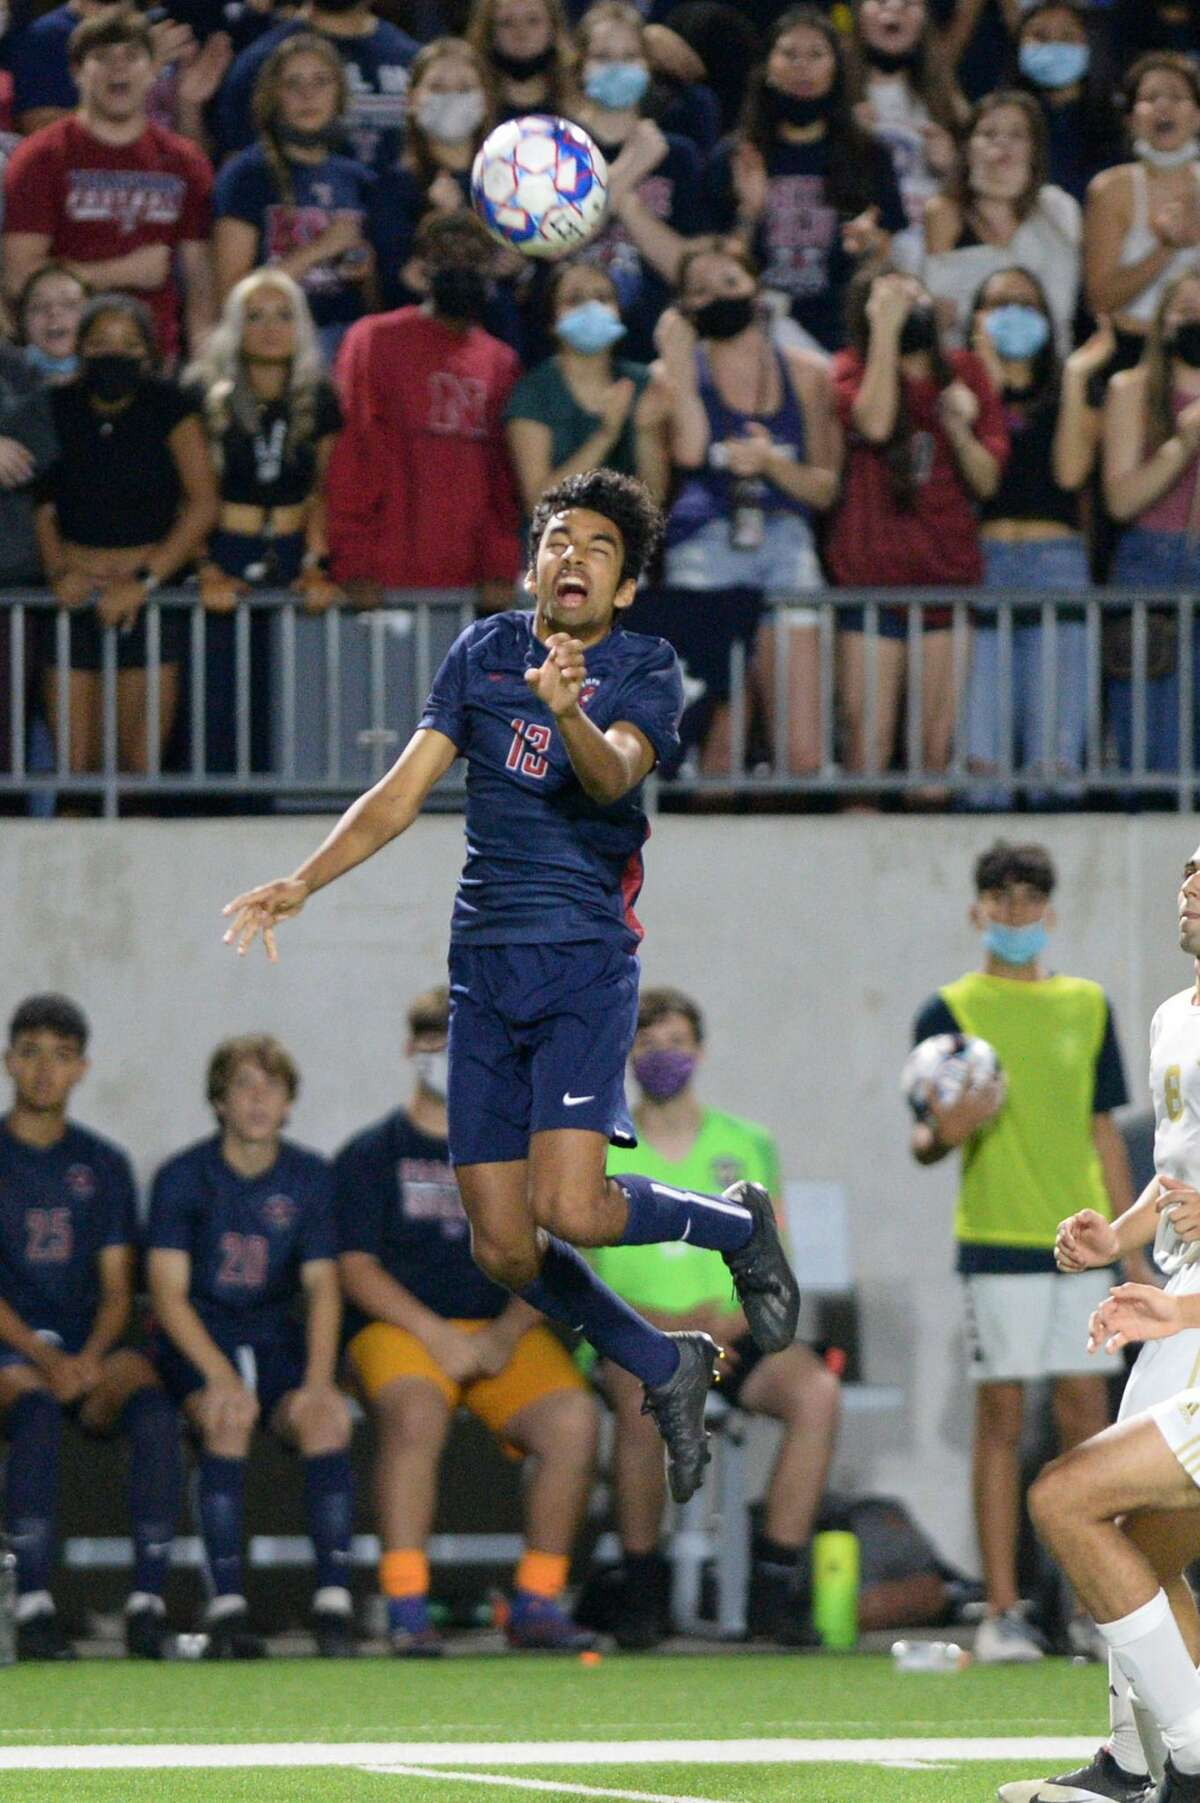 Ojas Shandilya (13) of Tompkins heads a ball during the second half of the region 6A-III soccer championship between the Tompkins Falcons and the Jersey Village Falcons on Friday, April 9, 2021 at Legacy Stadium, Katy, TX.